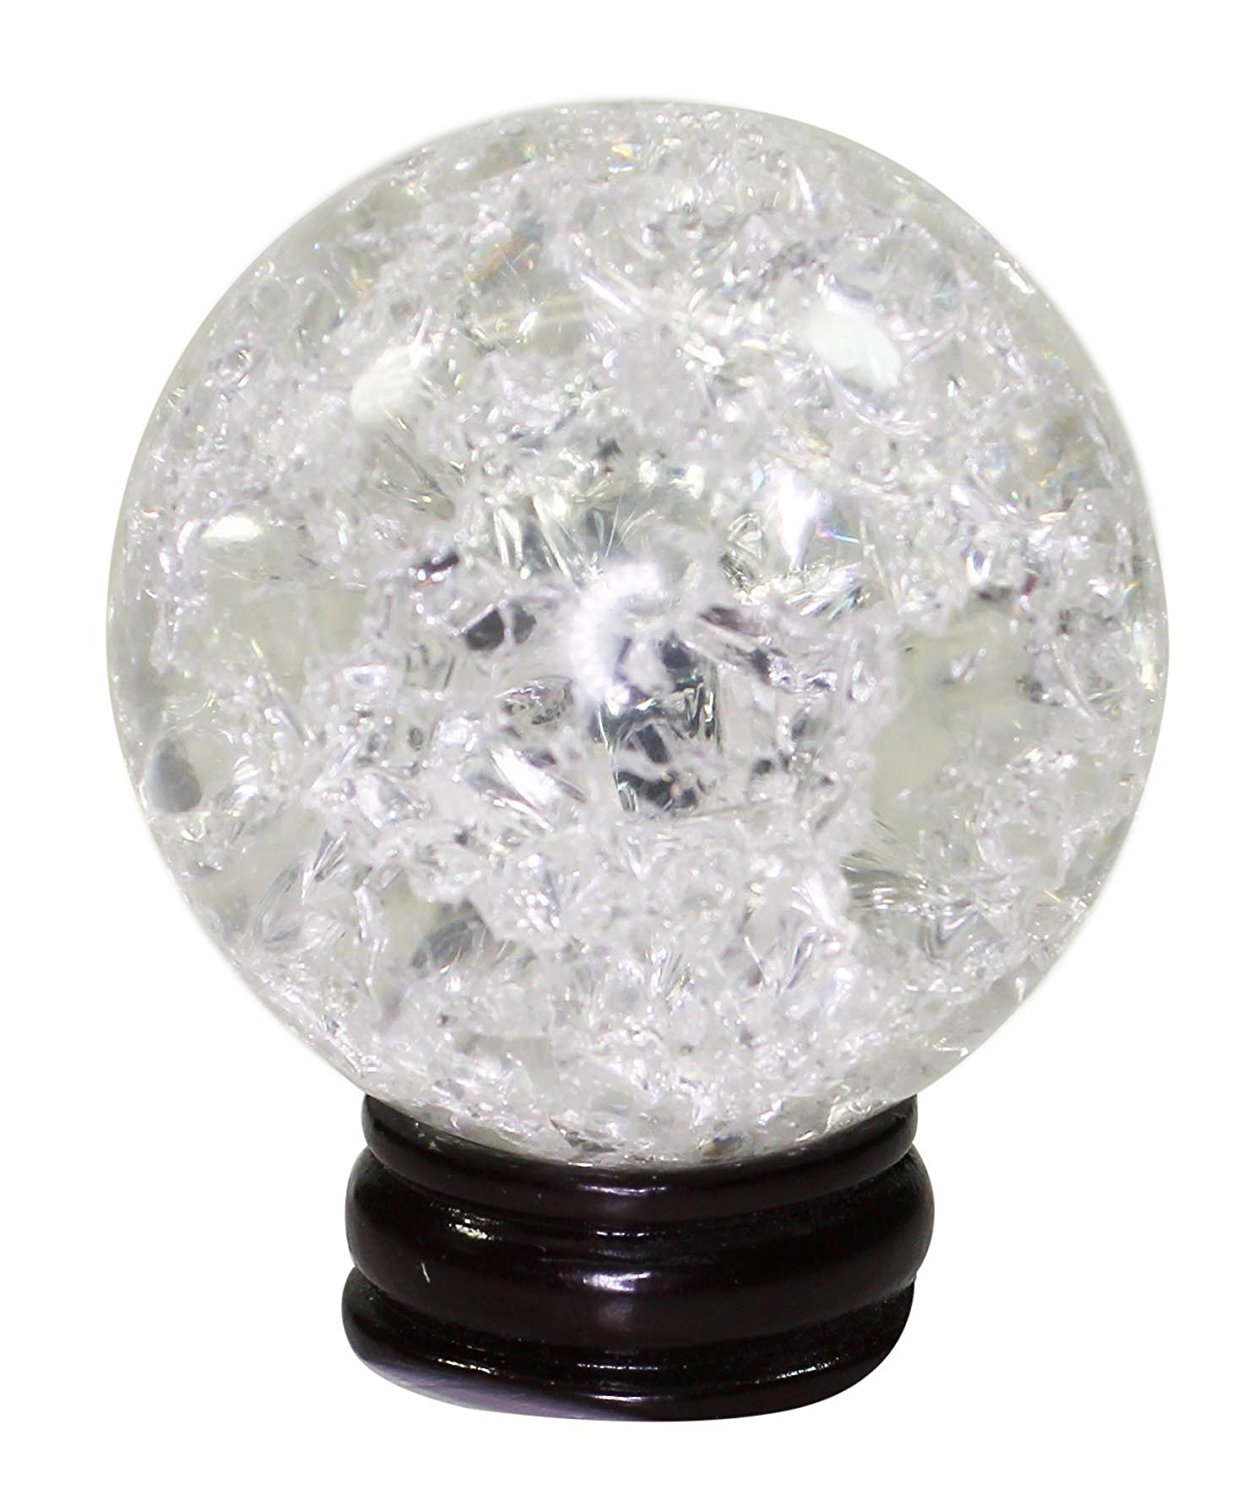 Crackle Glass Crystal Ball Sphere 45mm + 2 Display Stands, 1 Wooden 1 Acrylic Gazing Scrying